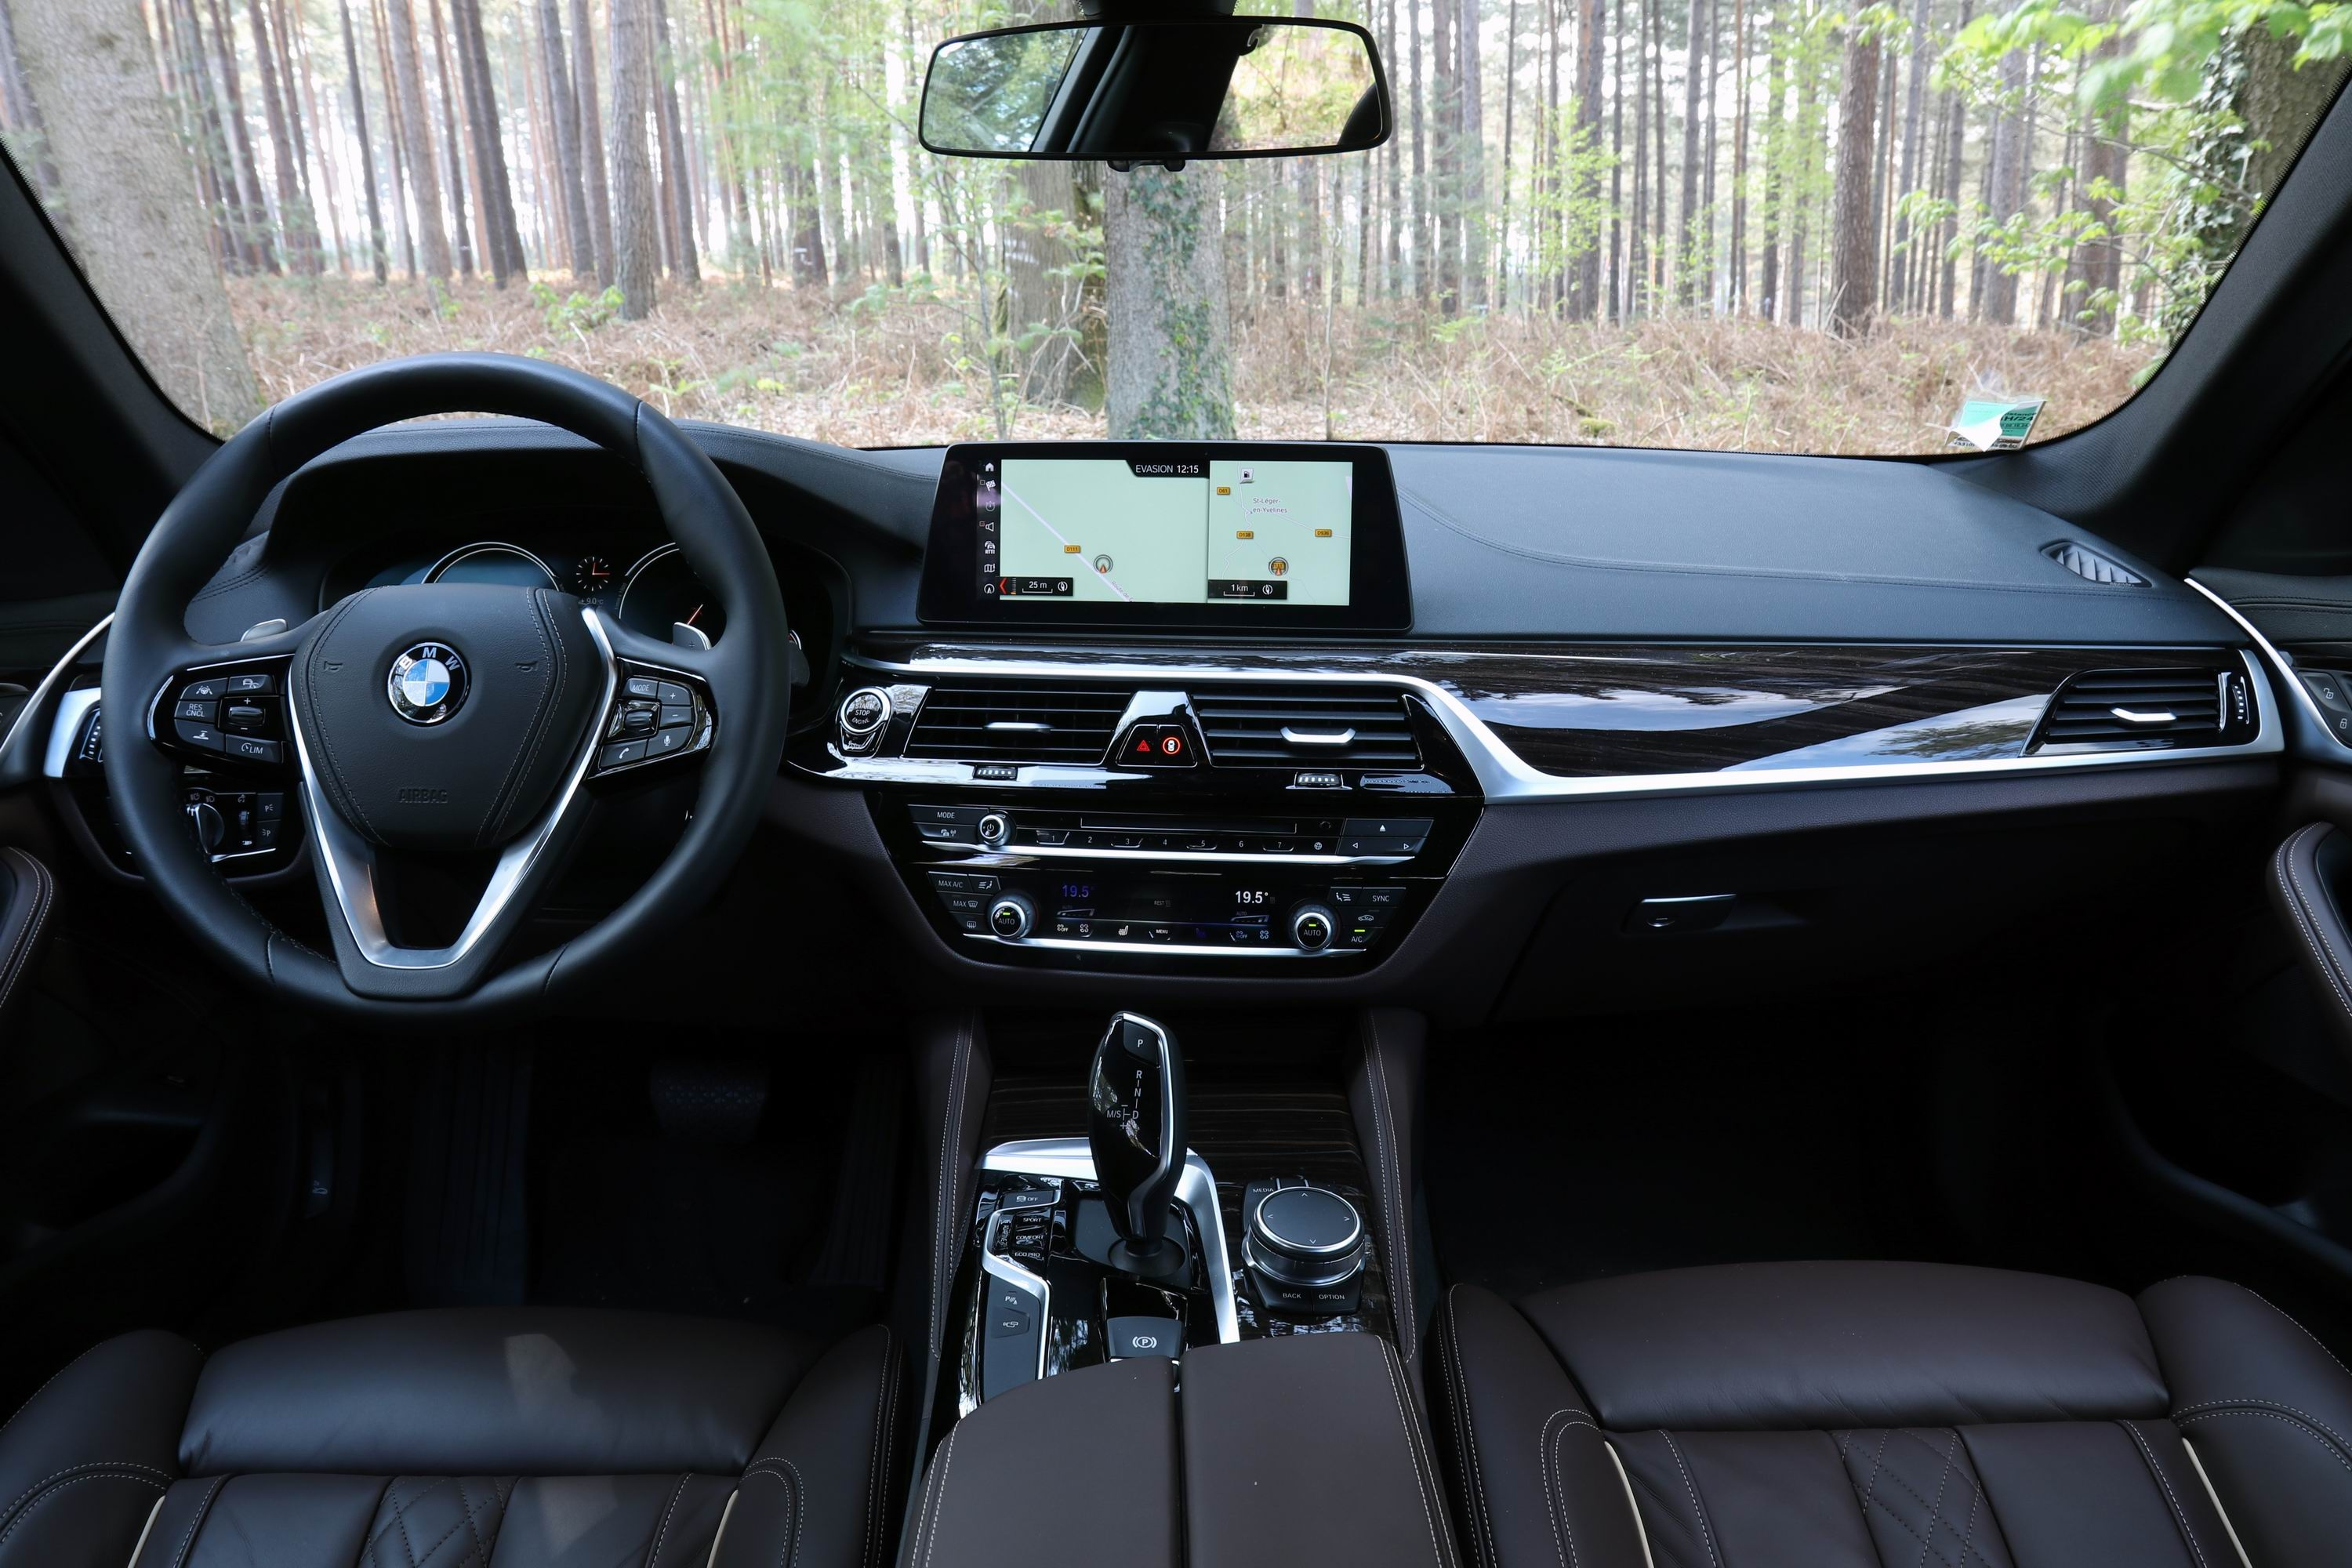 essai bmw s rie 520d xdrive compromis parfait. Black Bedroom Furniture Sets. Home Design Ideas